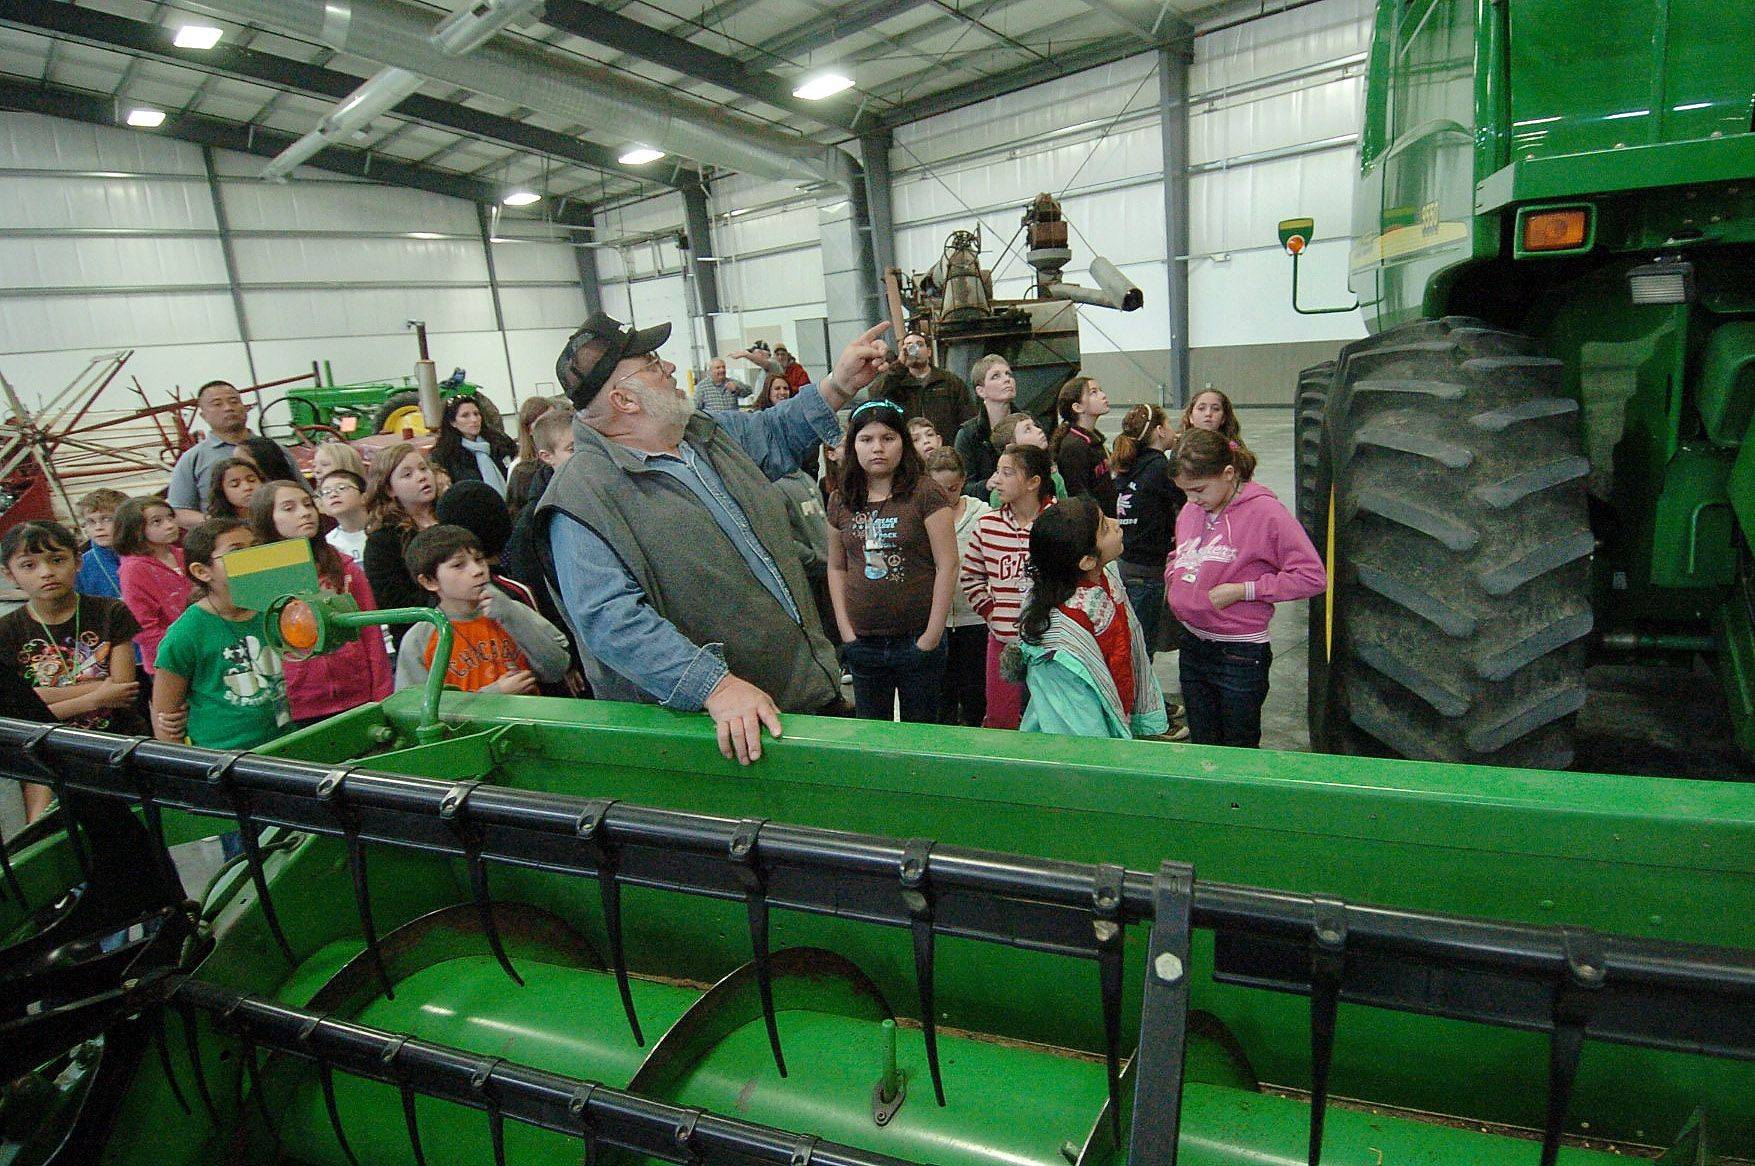 Ken Tekampe, left, of the Lake County Farm Heritage Association explains how a combine works to fourth graders from Big Hollow Elementary School in Ingleside at an Ag Expo at the Lake County Fairgrounds.